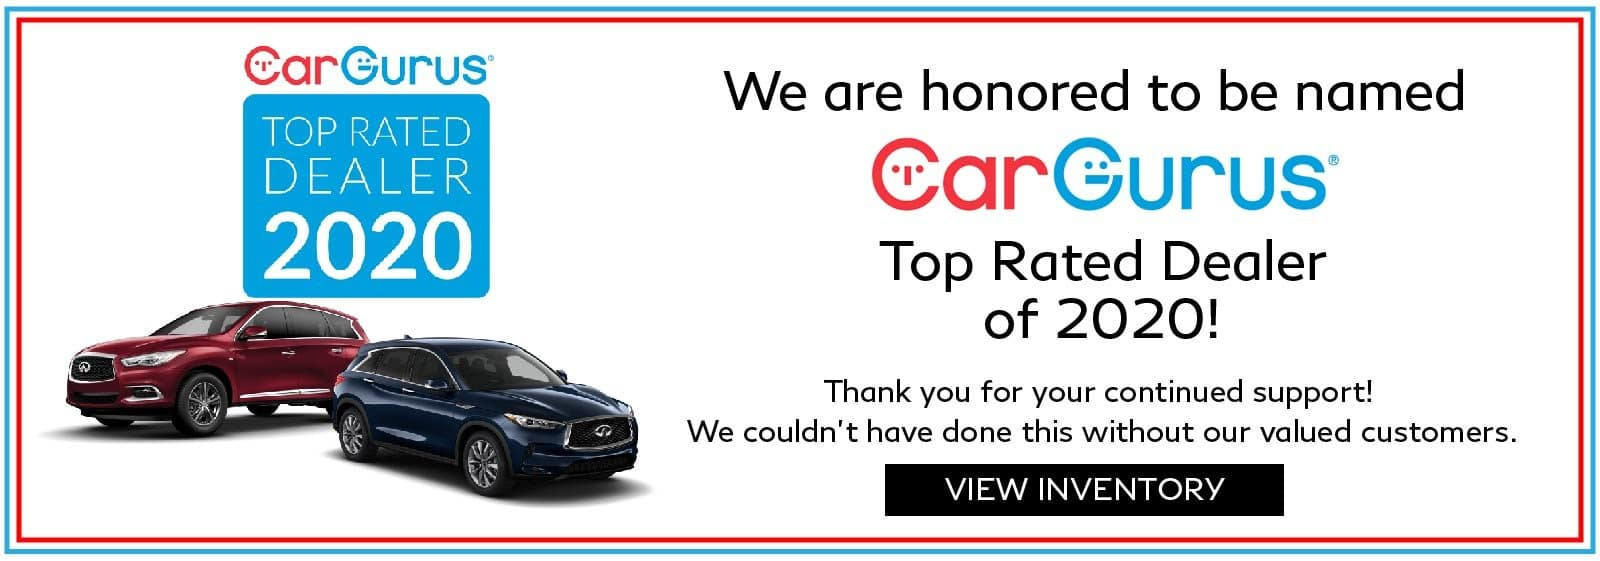 CarGurus Top Dealer of 2020 thanks to our valued customers.